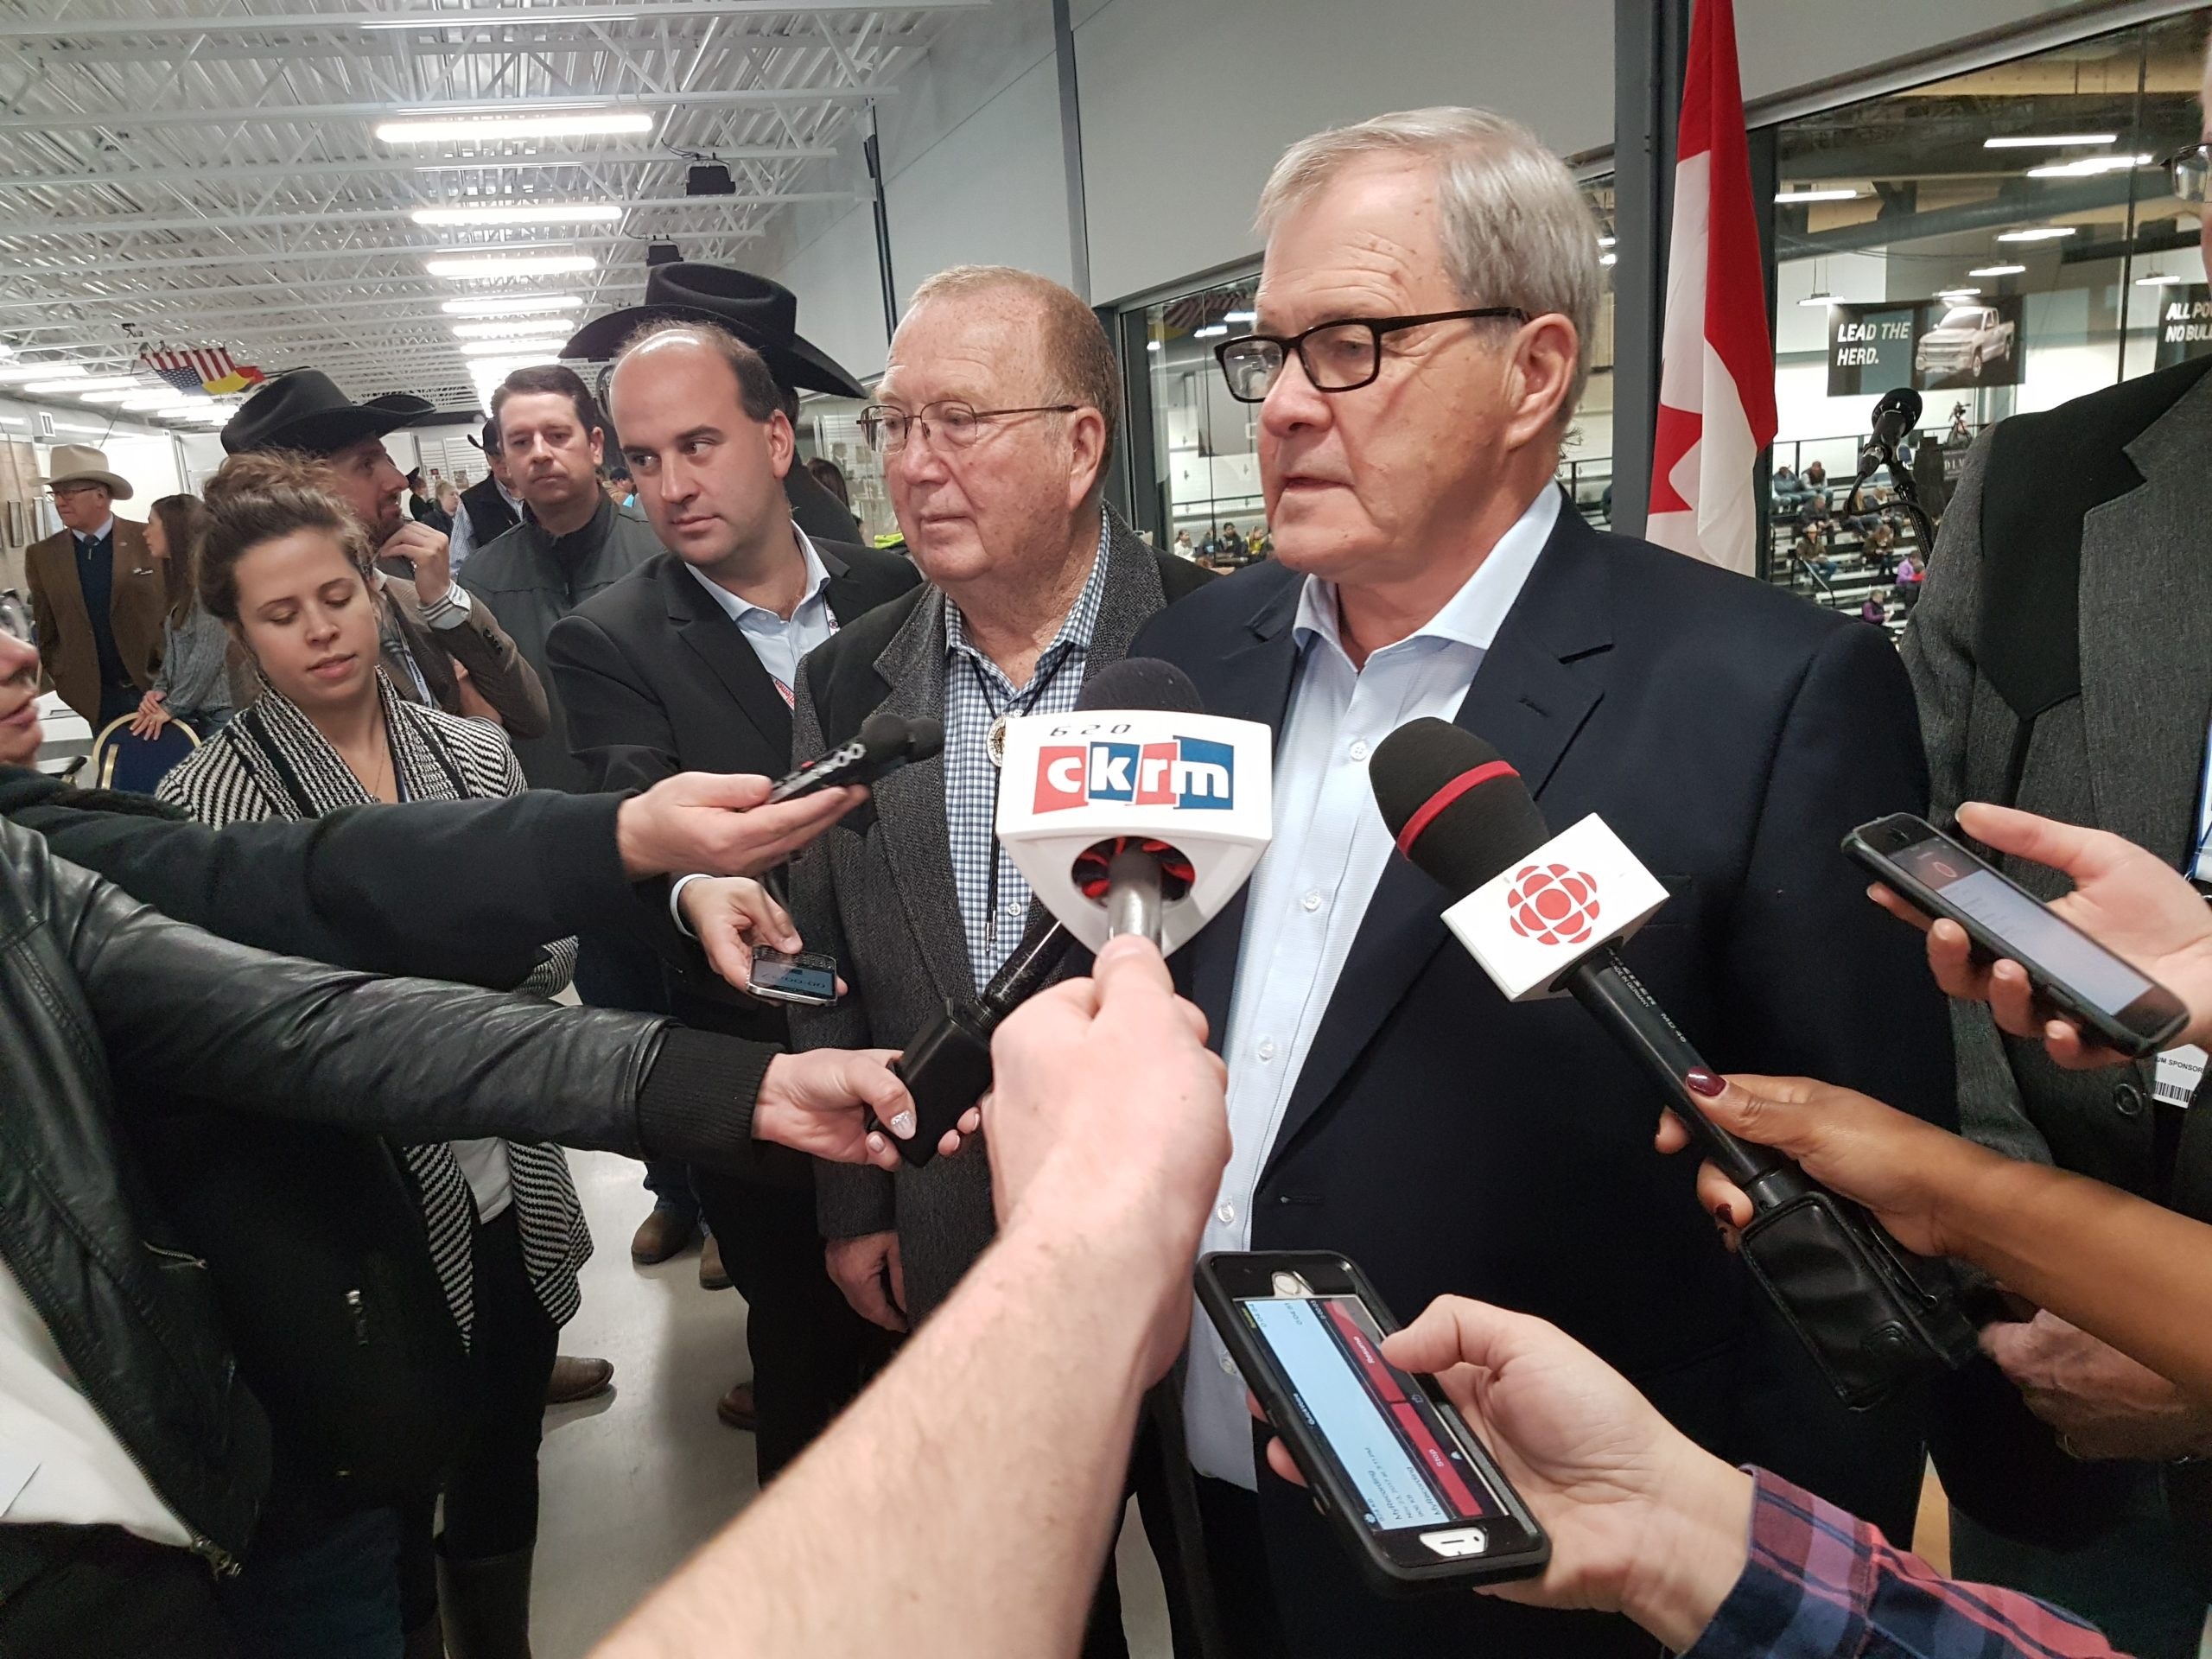 Federal Ag Minister ready to debate amended grain transportation legislation